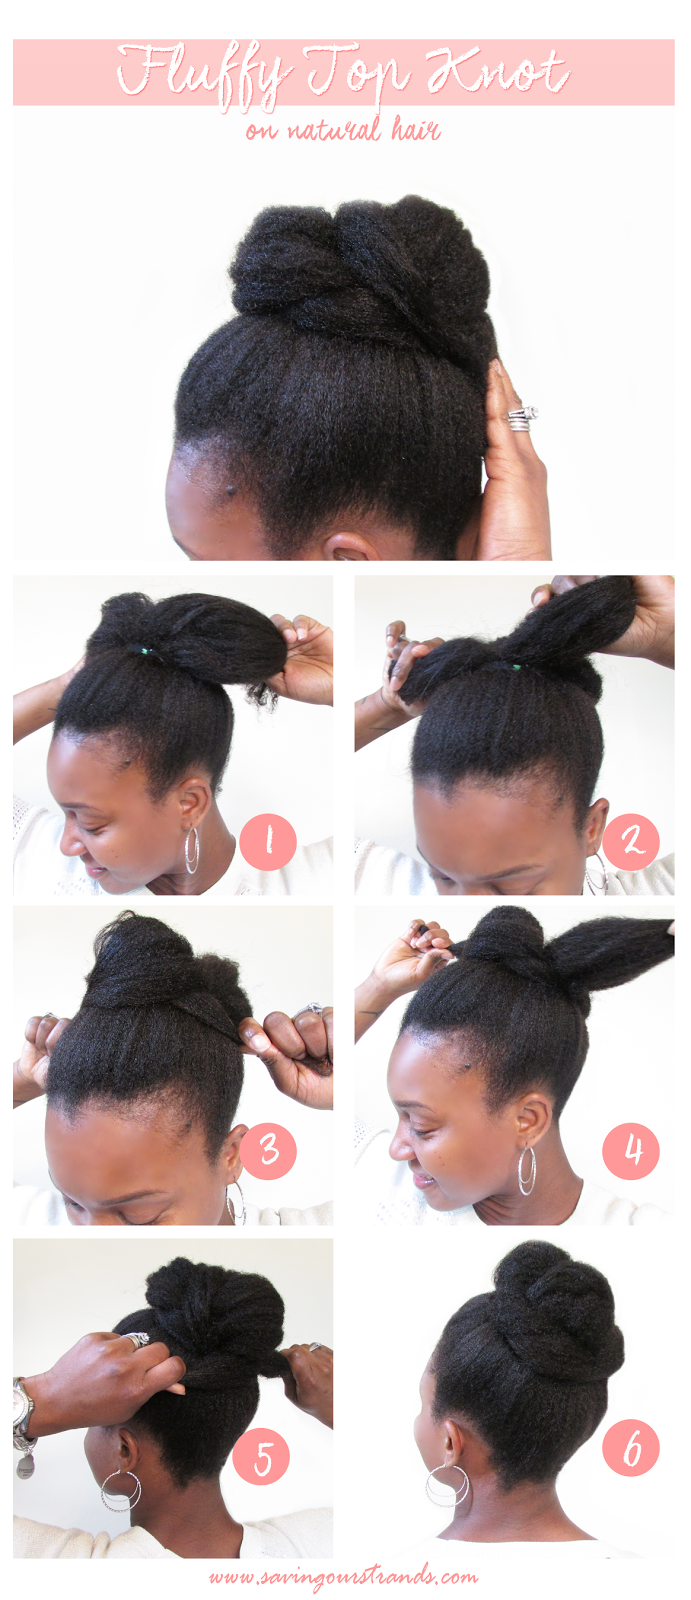 Healthy Hairstyles For Medium Hair quick hairstyle ideas